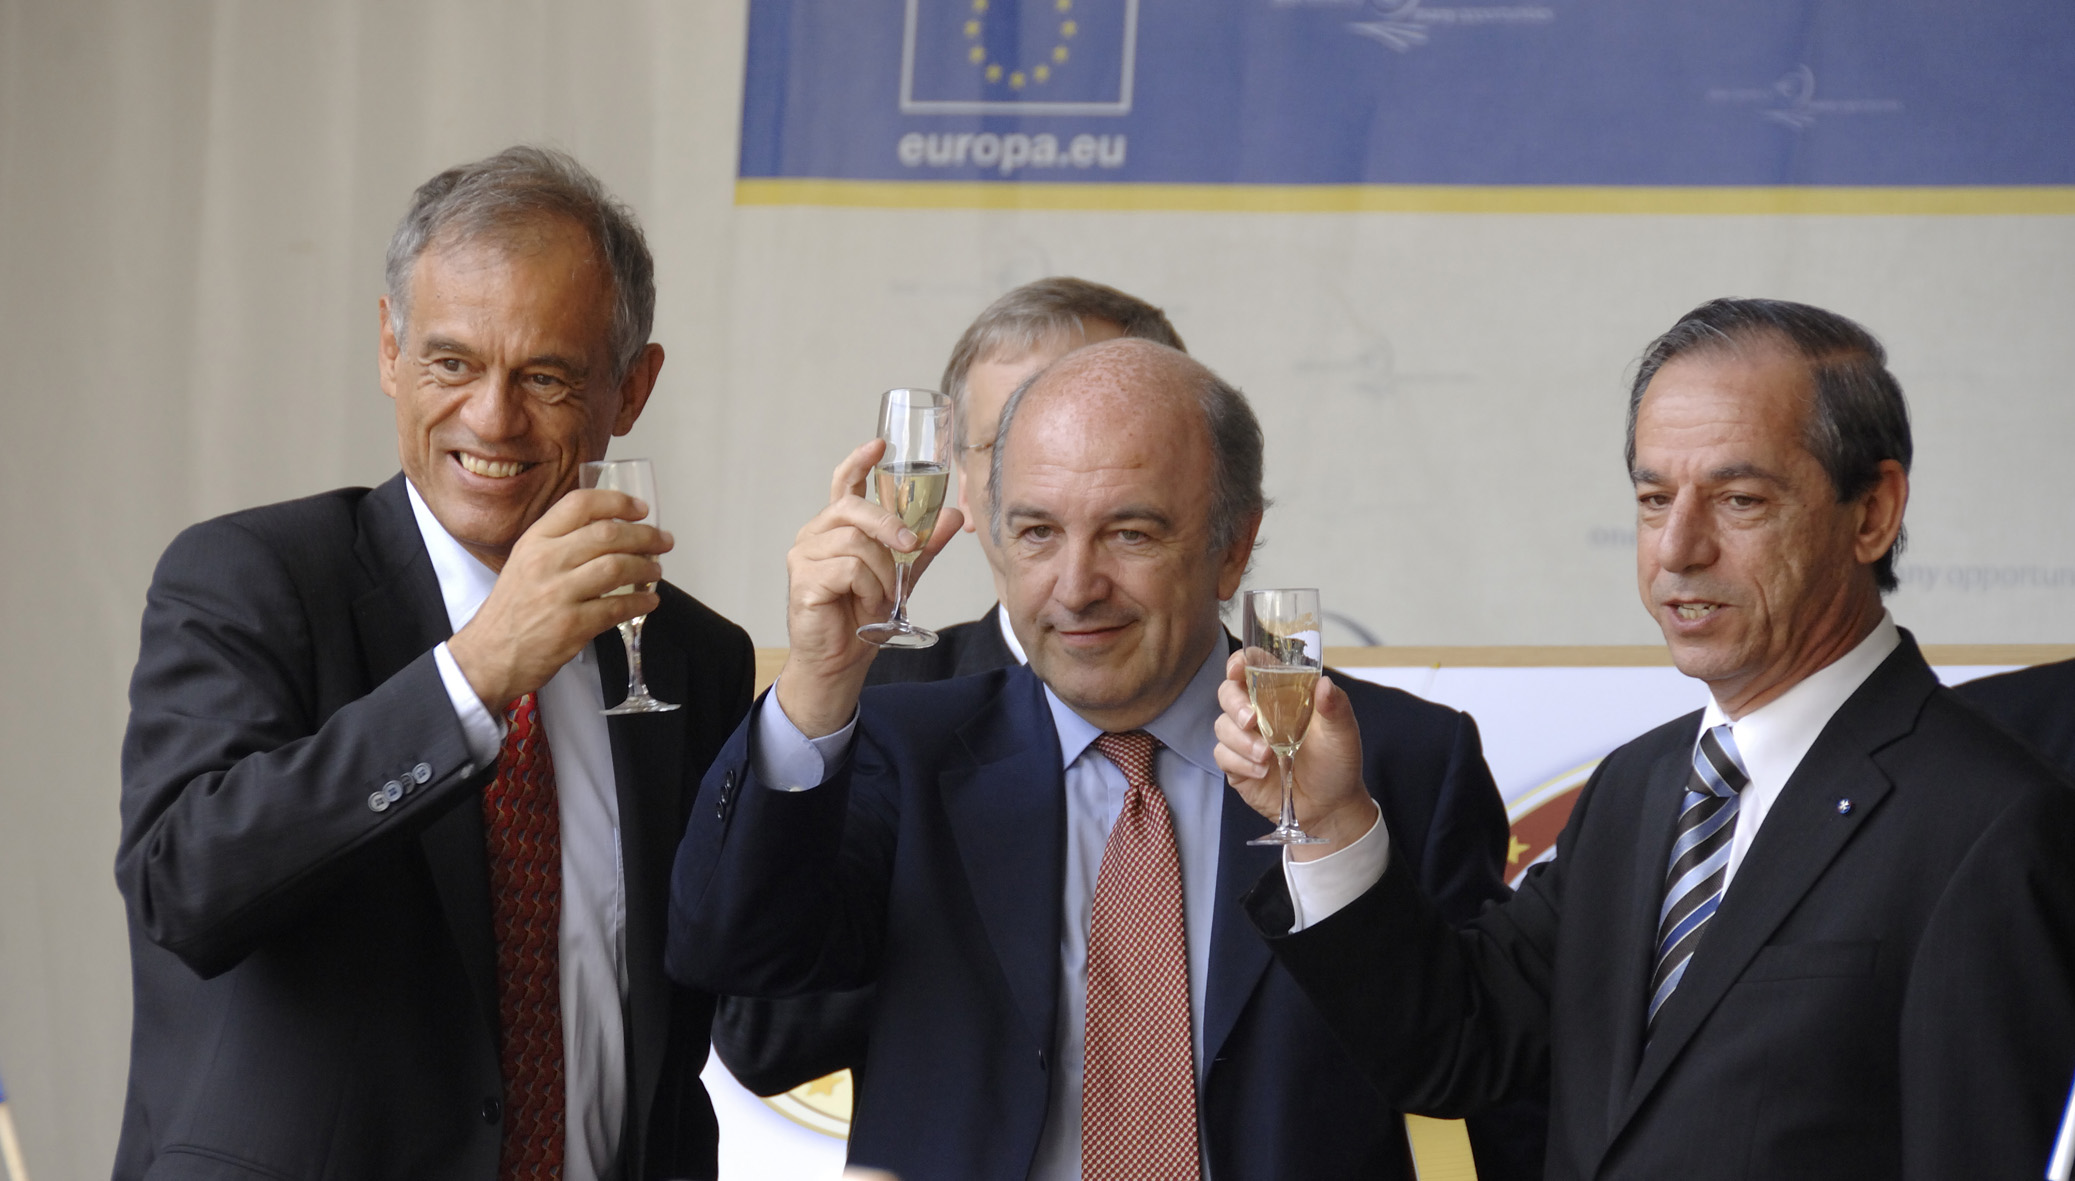 Participation of Joaquín Almunia, Member of the EC, in the festivities for the entry of Cyprus and Malta into the euro zone.